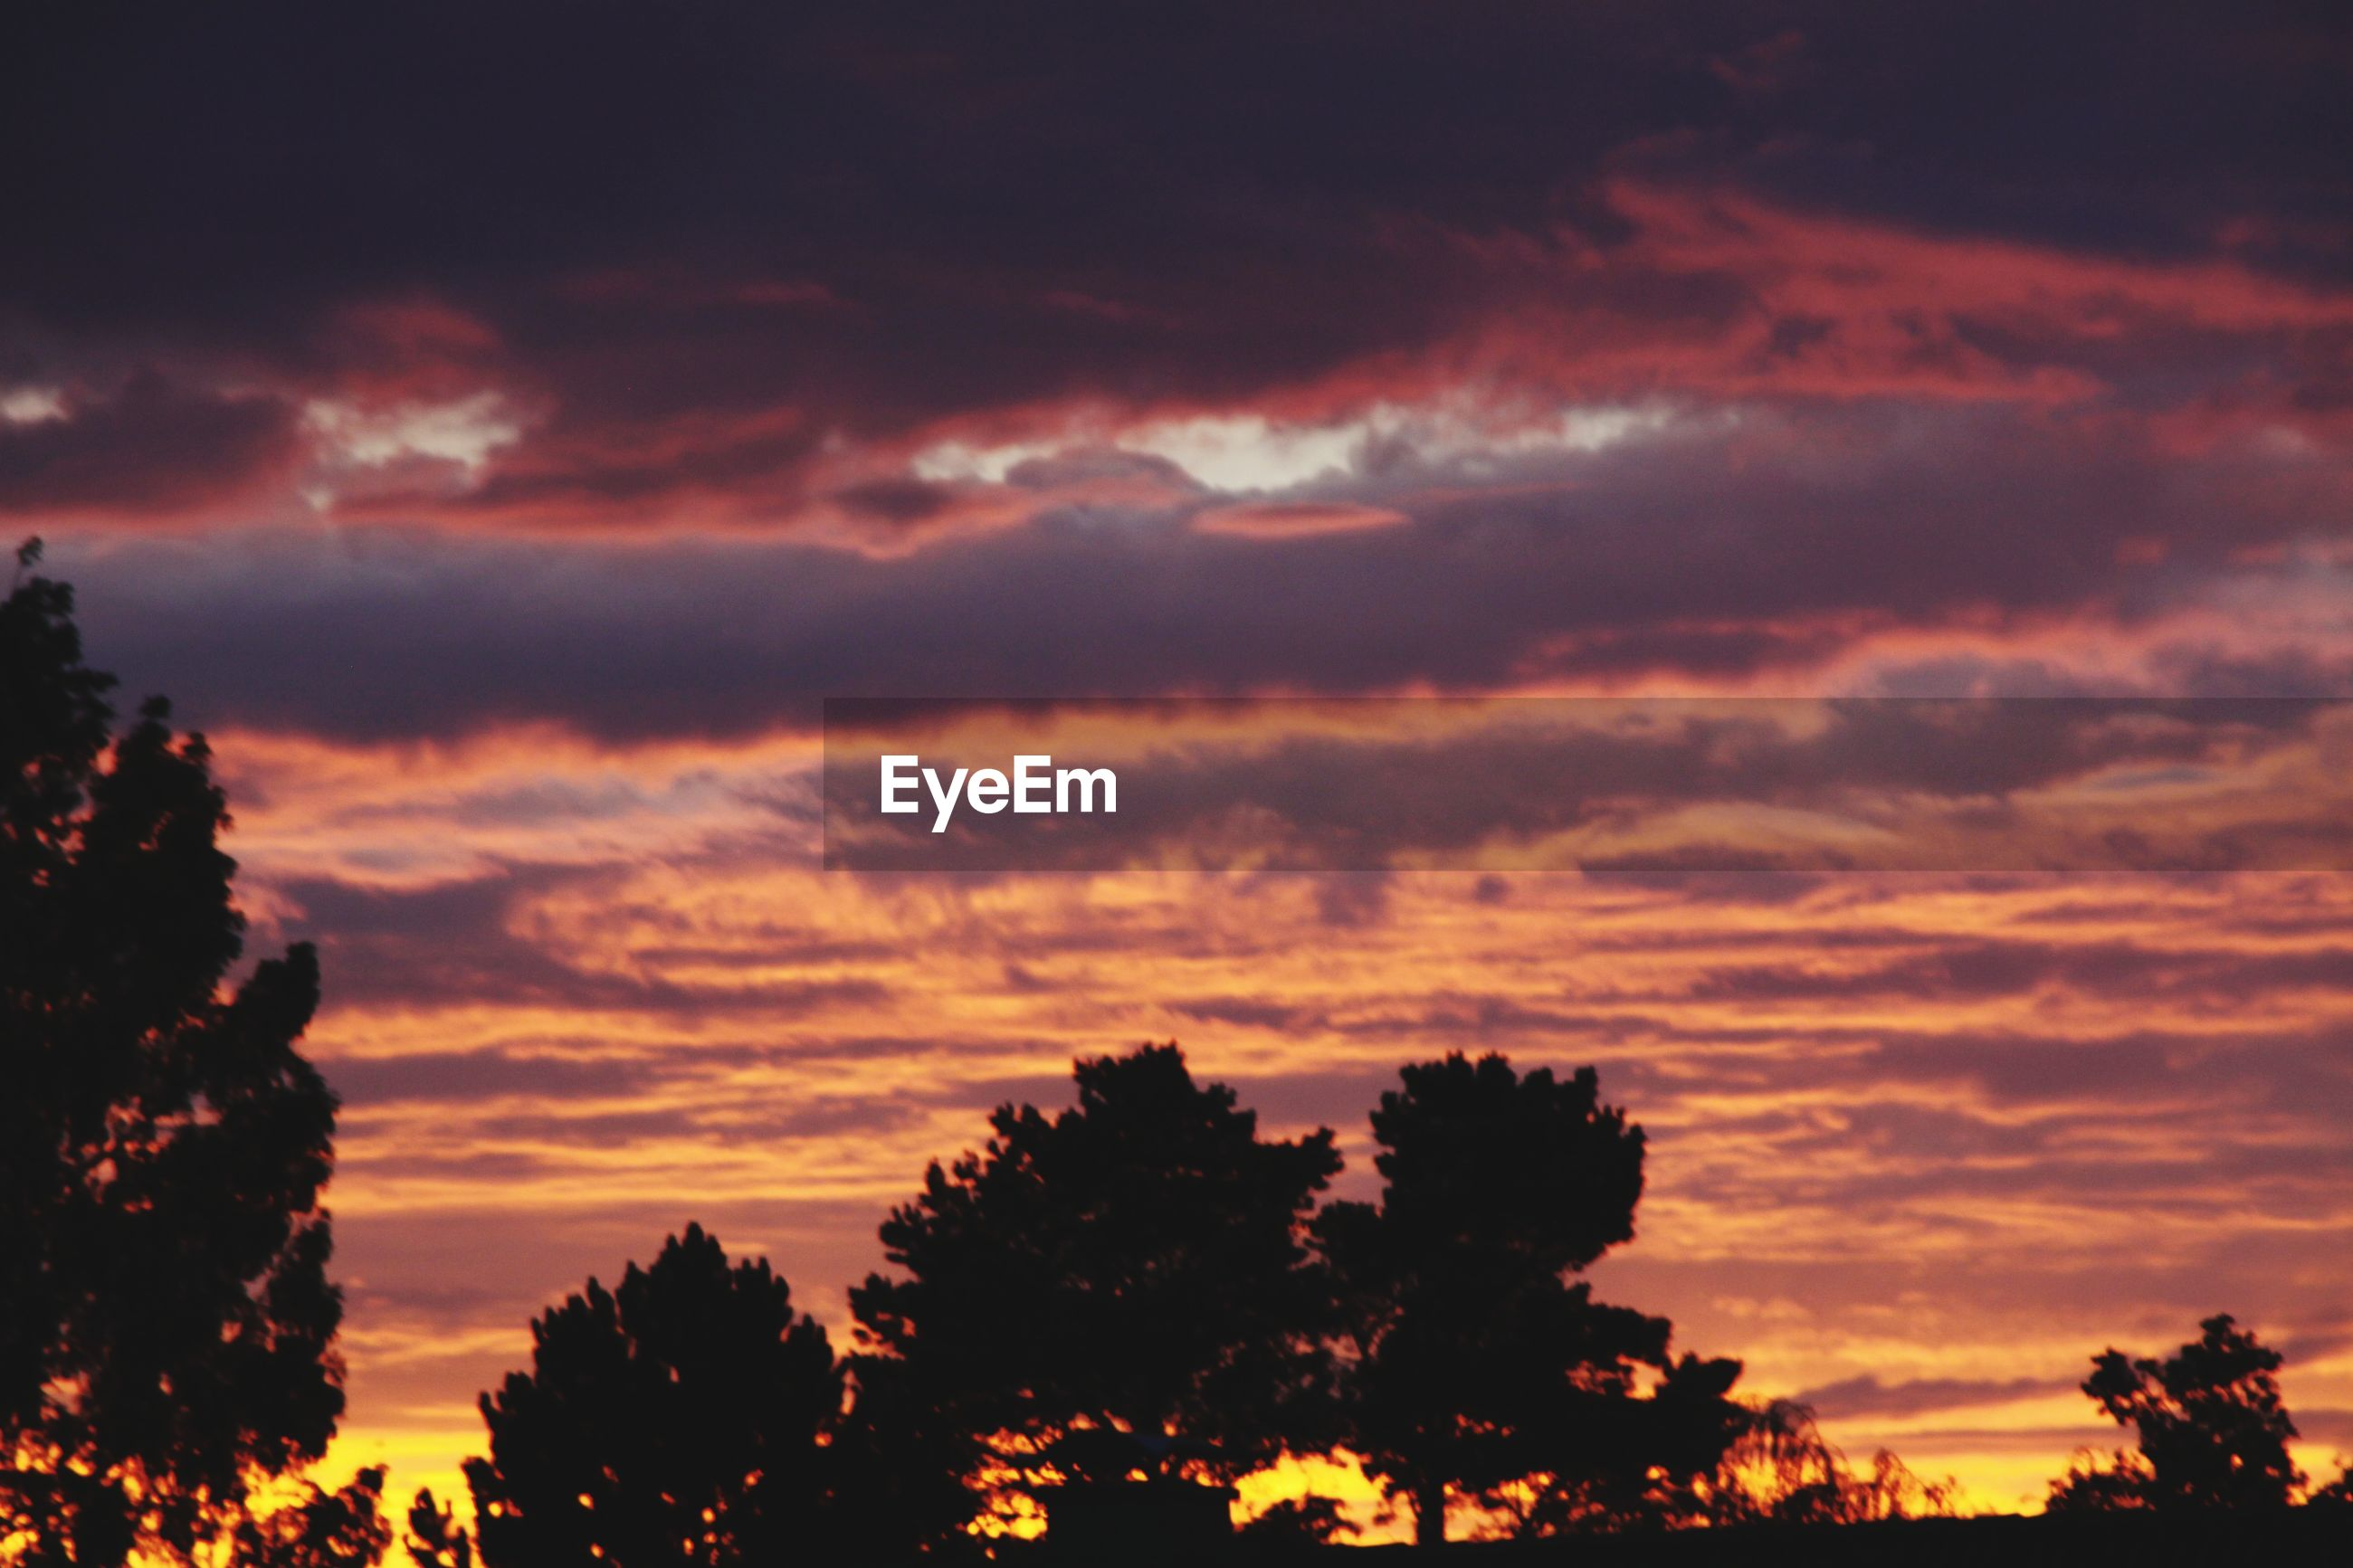 sky, cloud - sky, sunset, beauty in nature, tree, silhouette, scenics - nature, tranquility, plant, orange color, tranquil scene, nature, no people, idyllic, outdoors, dramatic sky, low angle view, growth, atmospheric mood, romantic sky